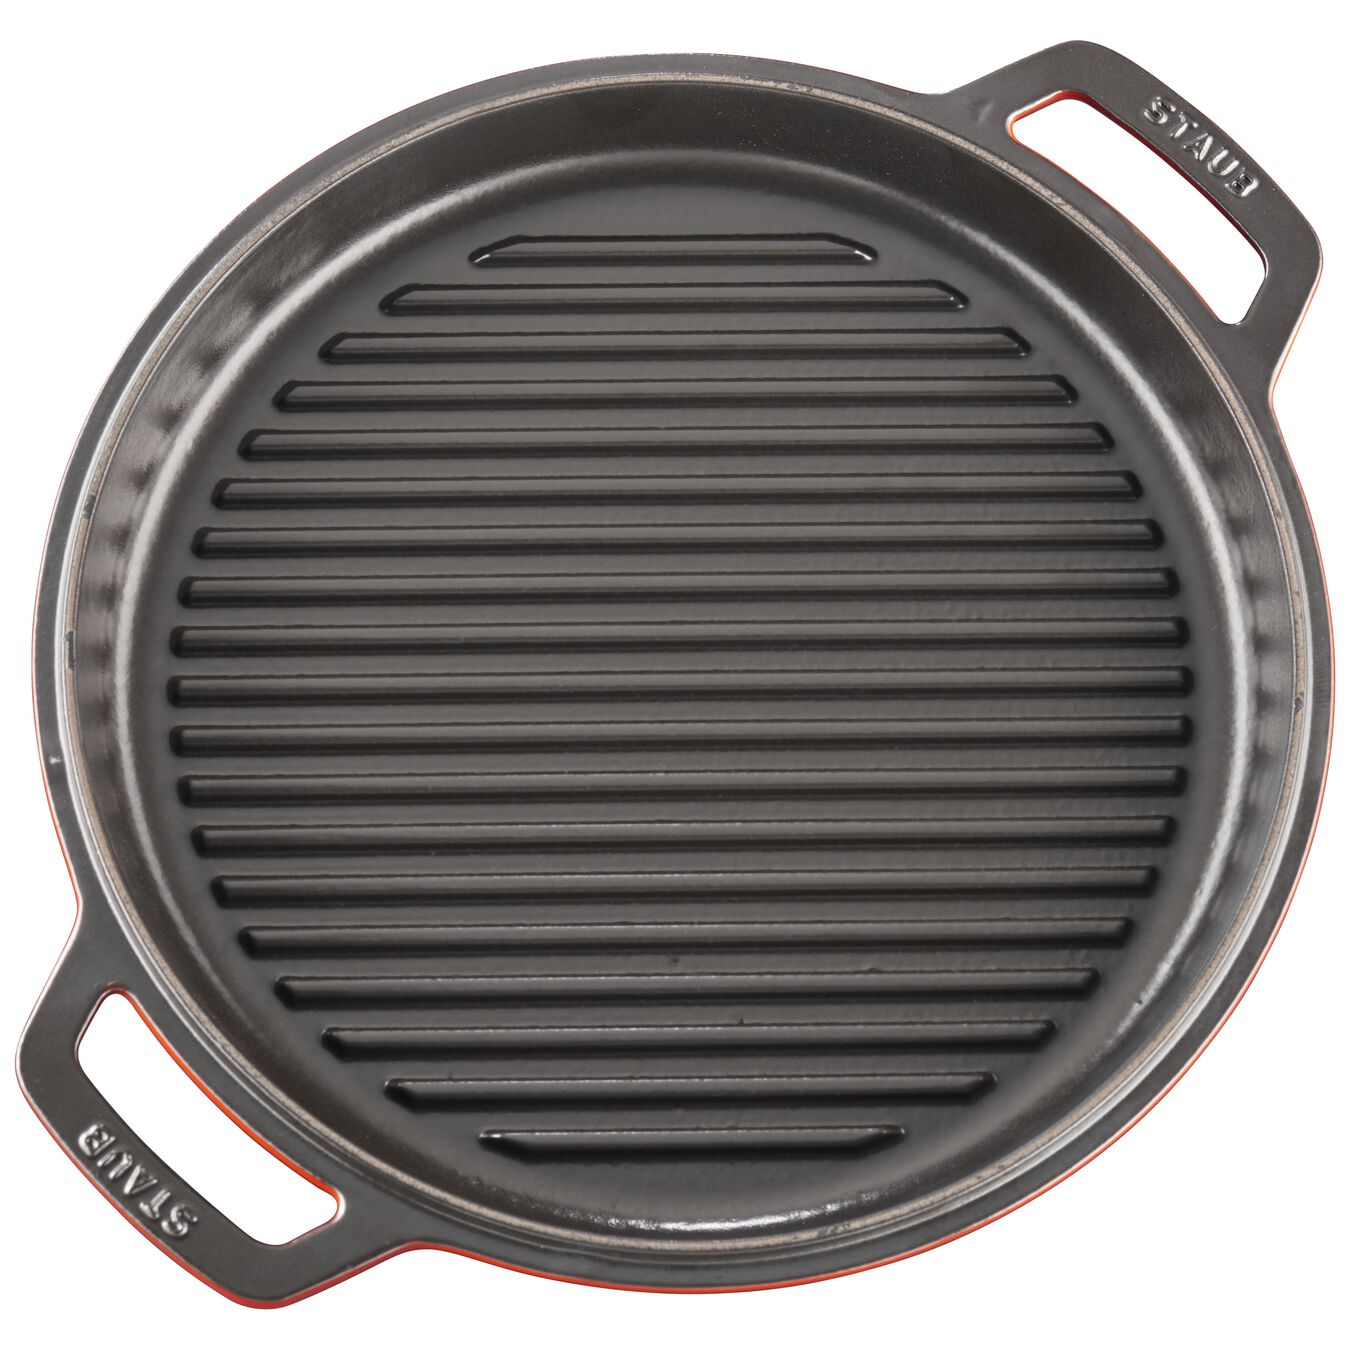 6 l Cast iron round Braise + Grill, Cherry - Visual Imperfections,,large 7